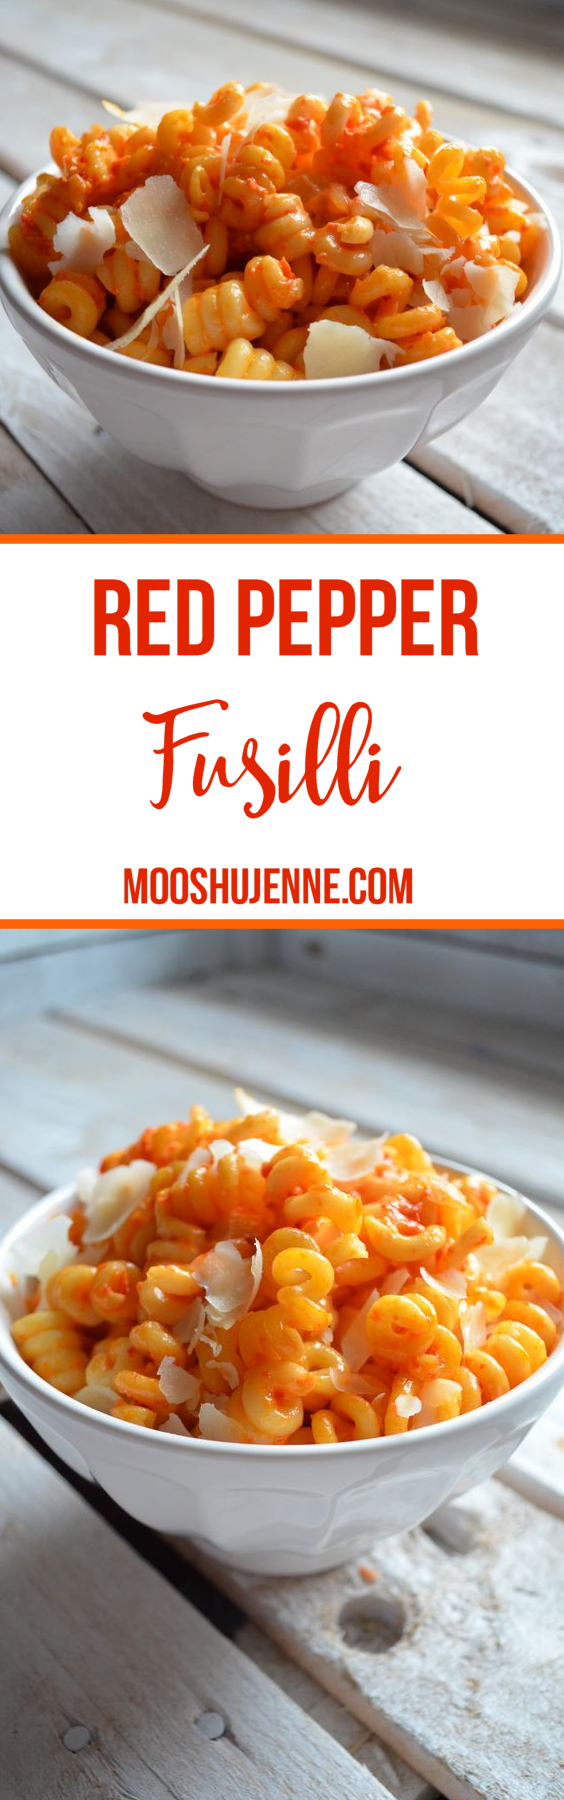 Leftovers are a huge portion of lunches in our home. It's a way not to create food waste and also have a healthy lunch. This Red Pepper Fusilli is perfect for that. The sauce really taste so much better the next day because it sticks to the pasta.